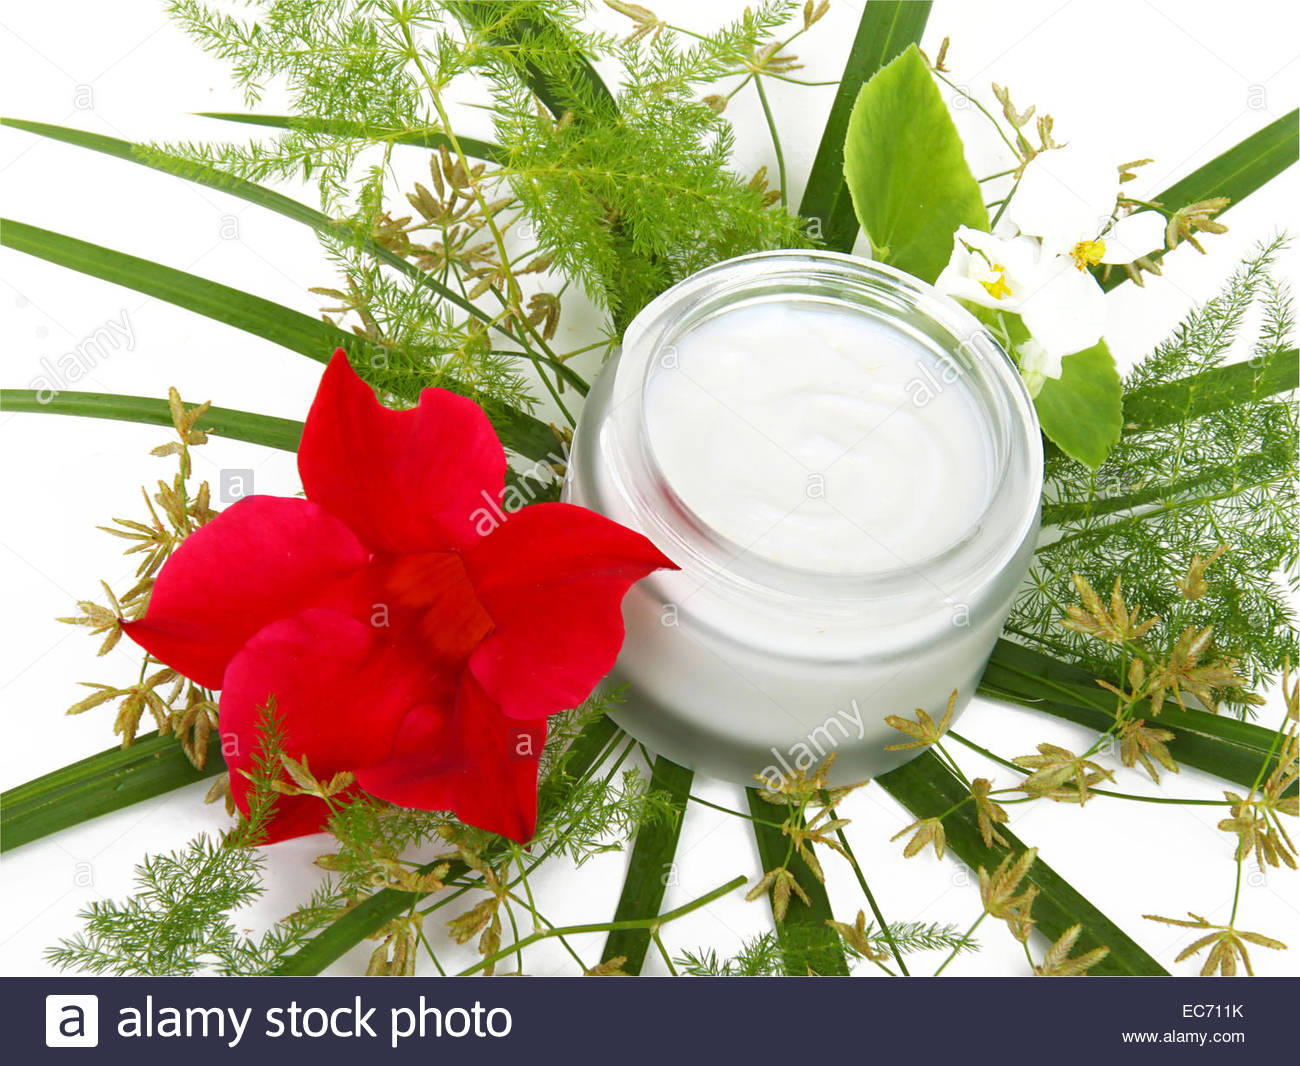 Liniment Stock Photos Liniment Stock Images Page 3 Alamy